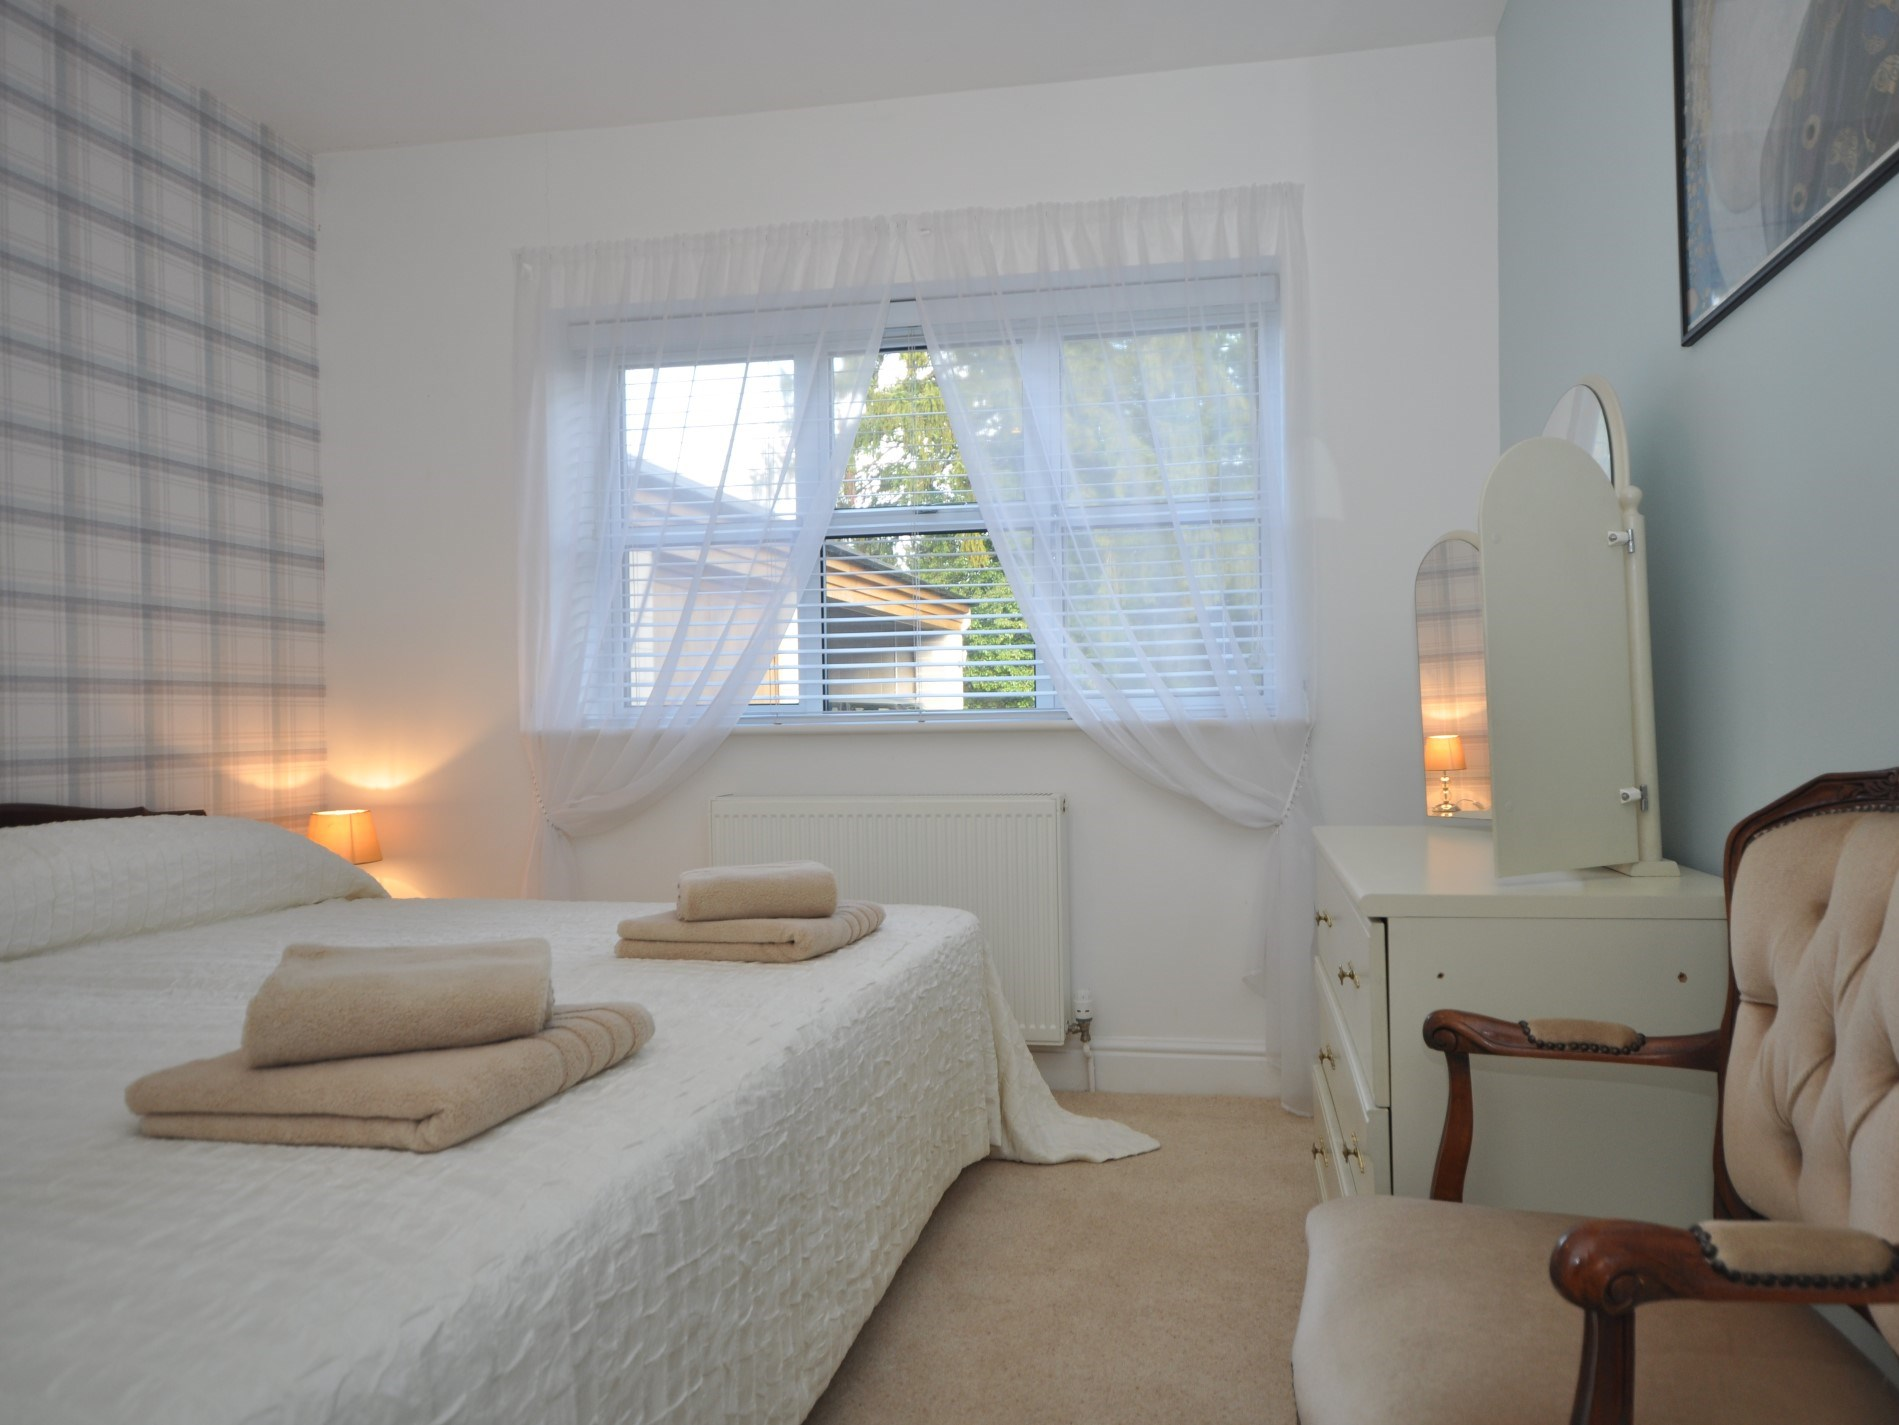 Wake up to the morning sun and bird song in this spacious king-size bedroom